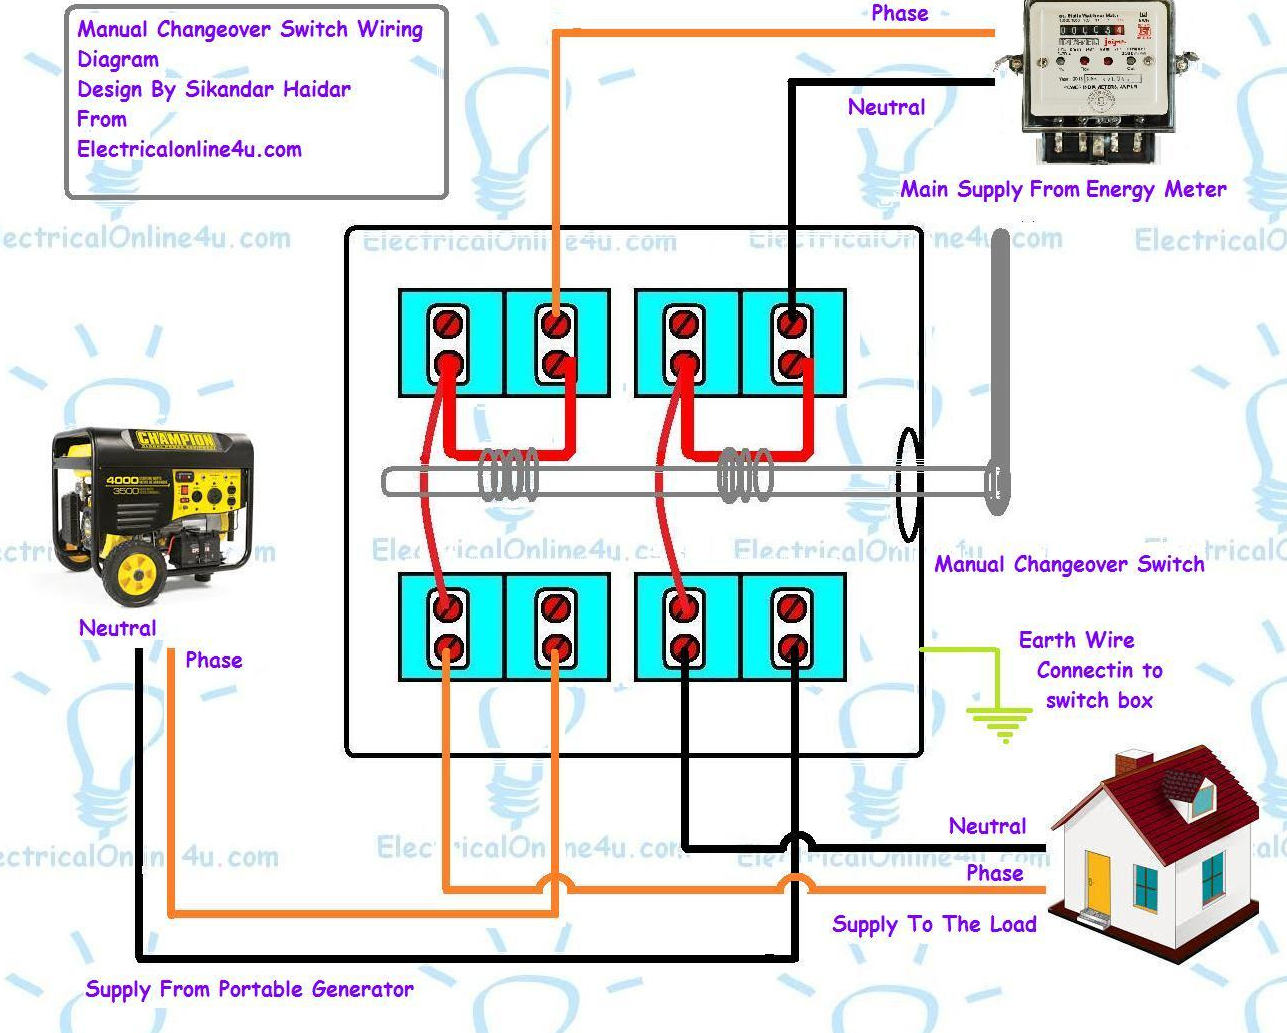 Manual Changeover Switch Wiring Diagram For Portable Generator Automatic Light Circuit